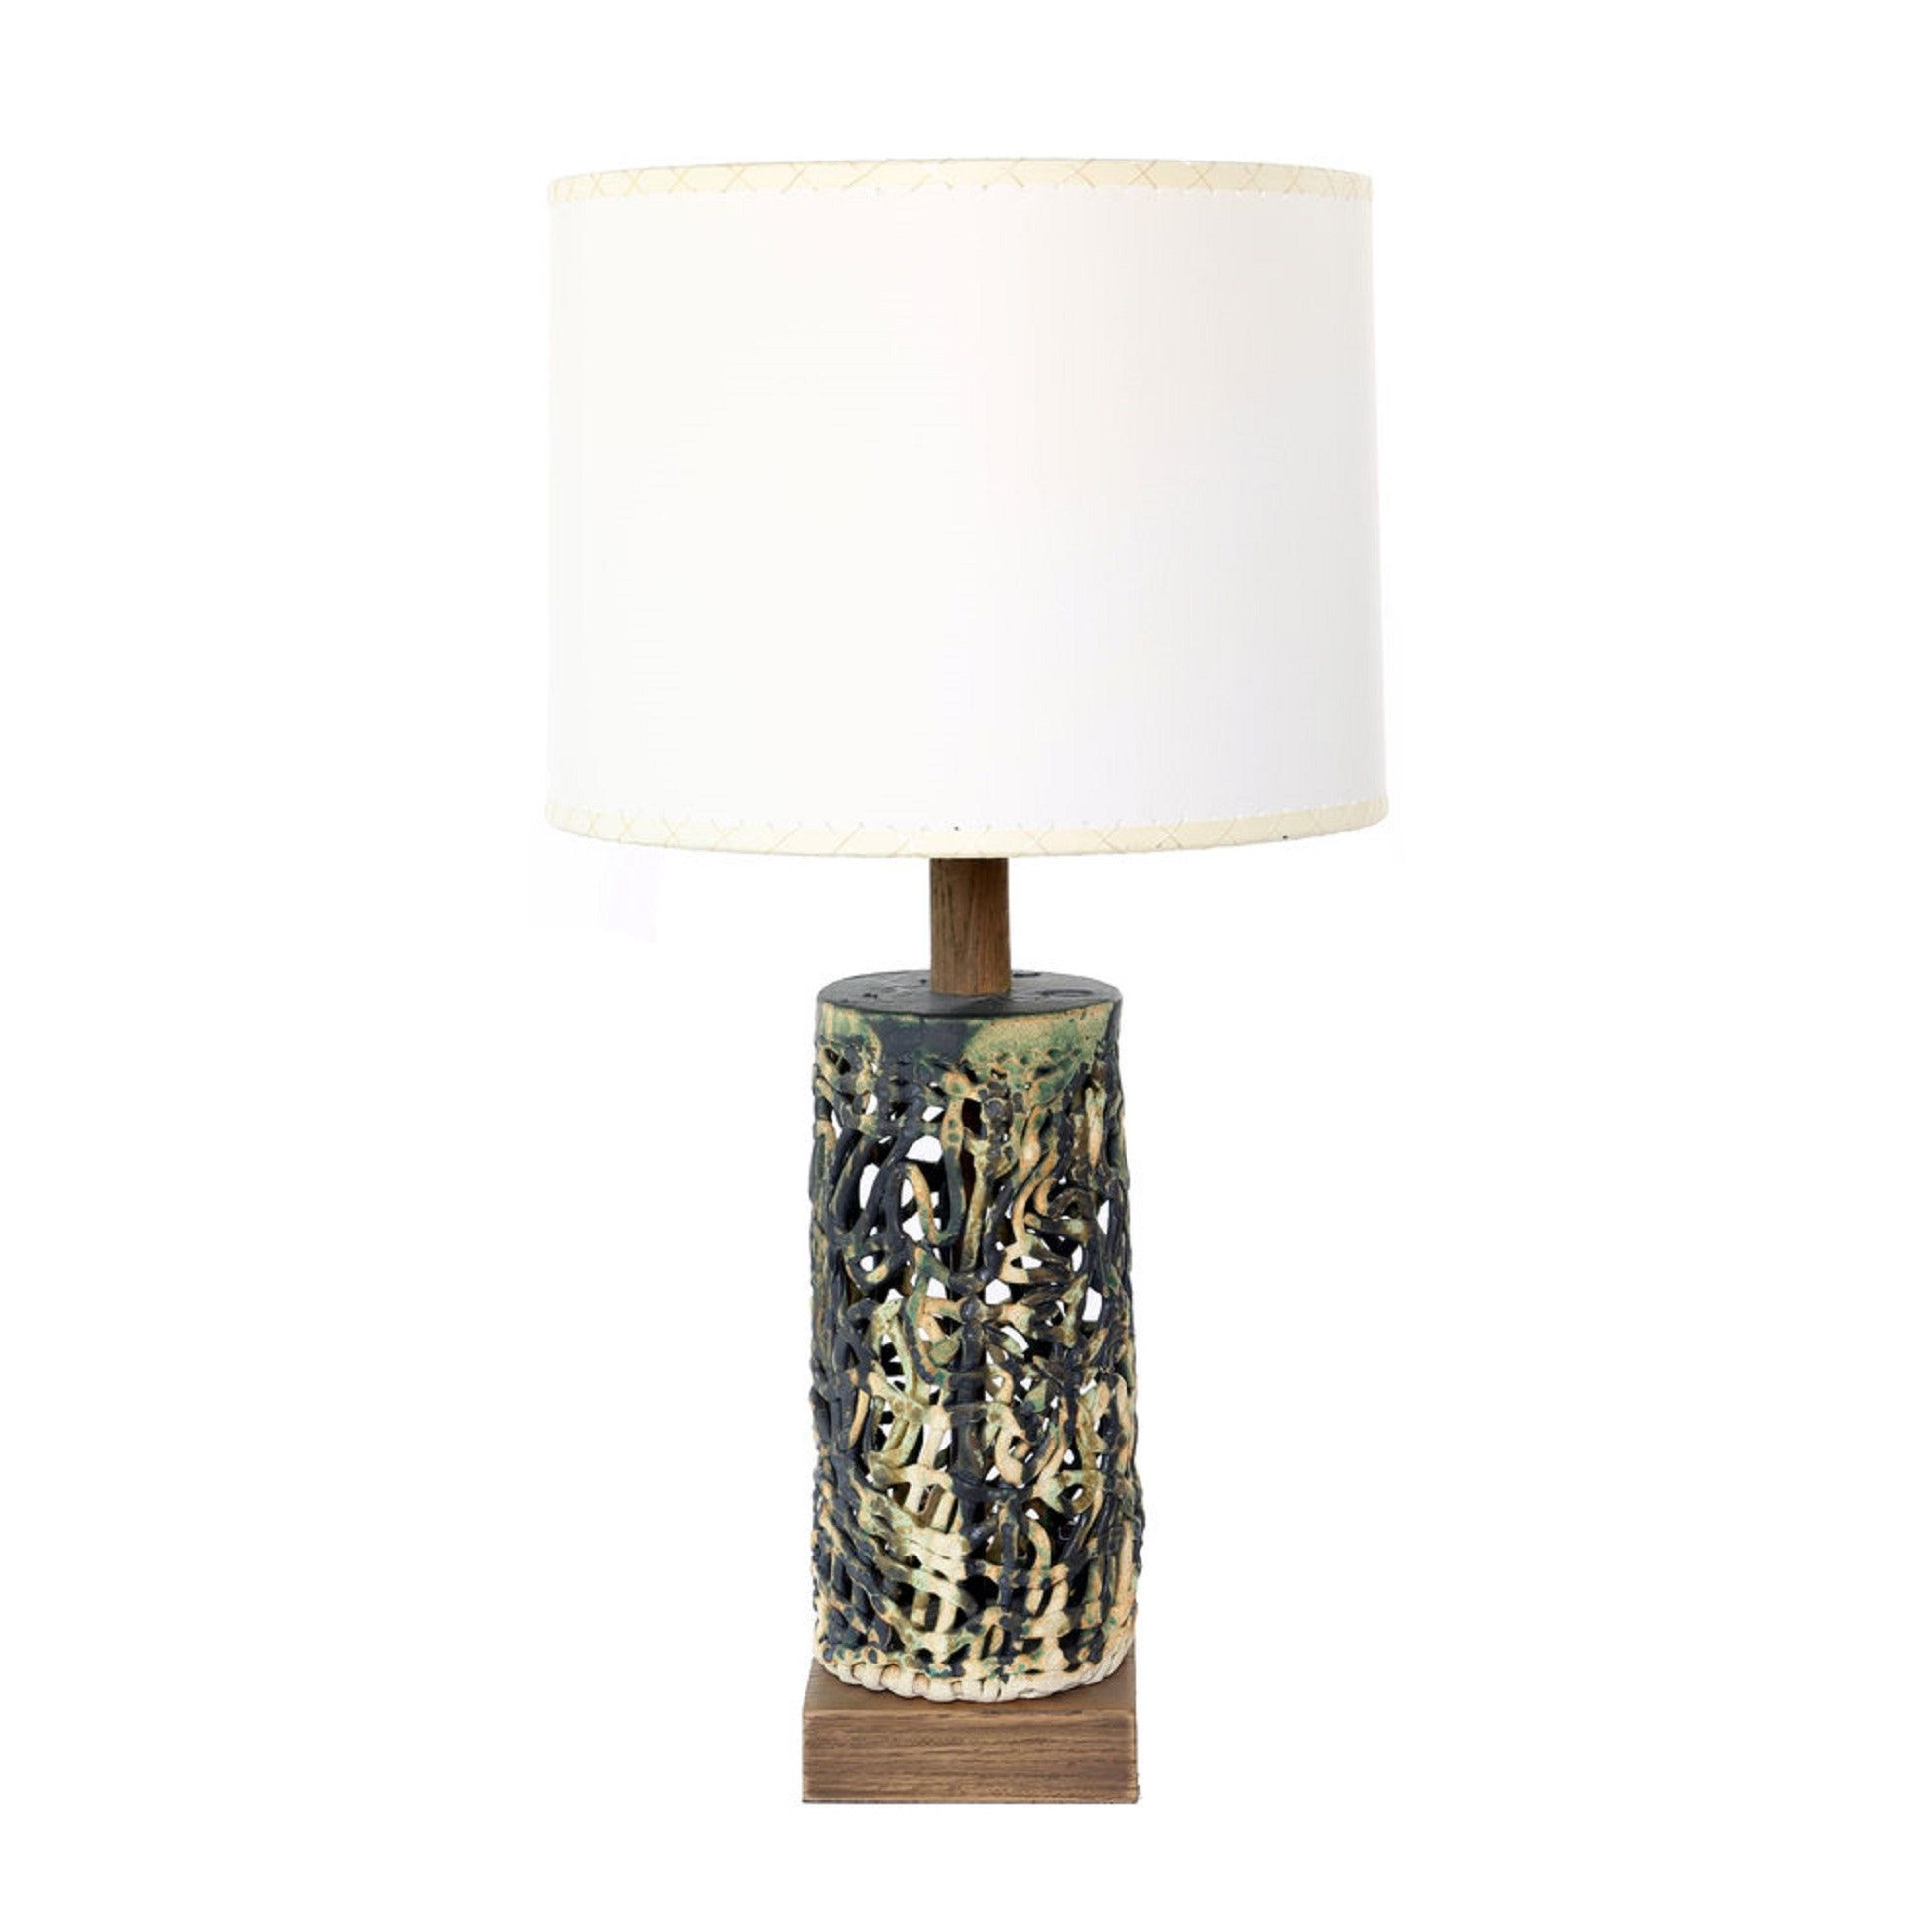 accent table lamps beautiful small squiggle weave lamp wonderfull throughout chairs set amish made furniture half moon with mirror short narrow coffee patterned plastic